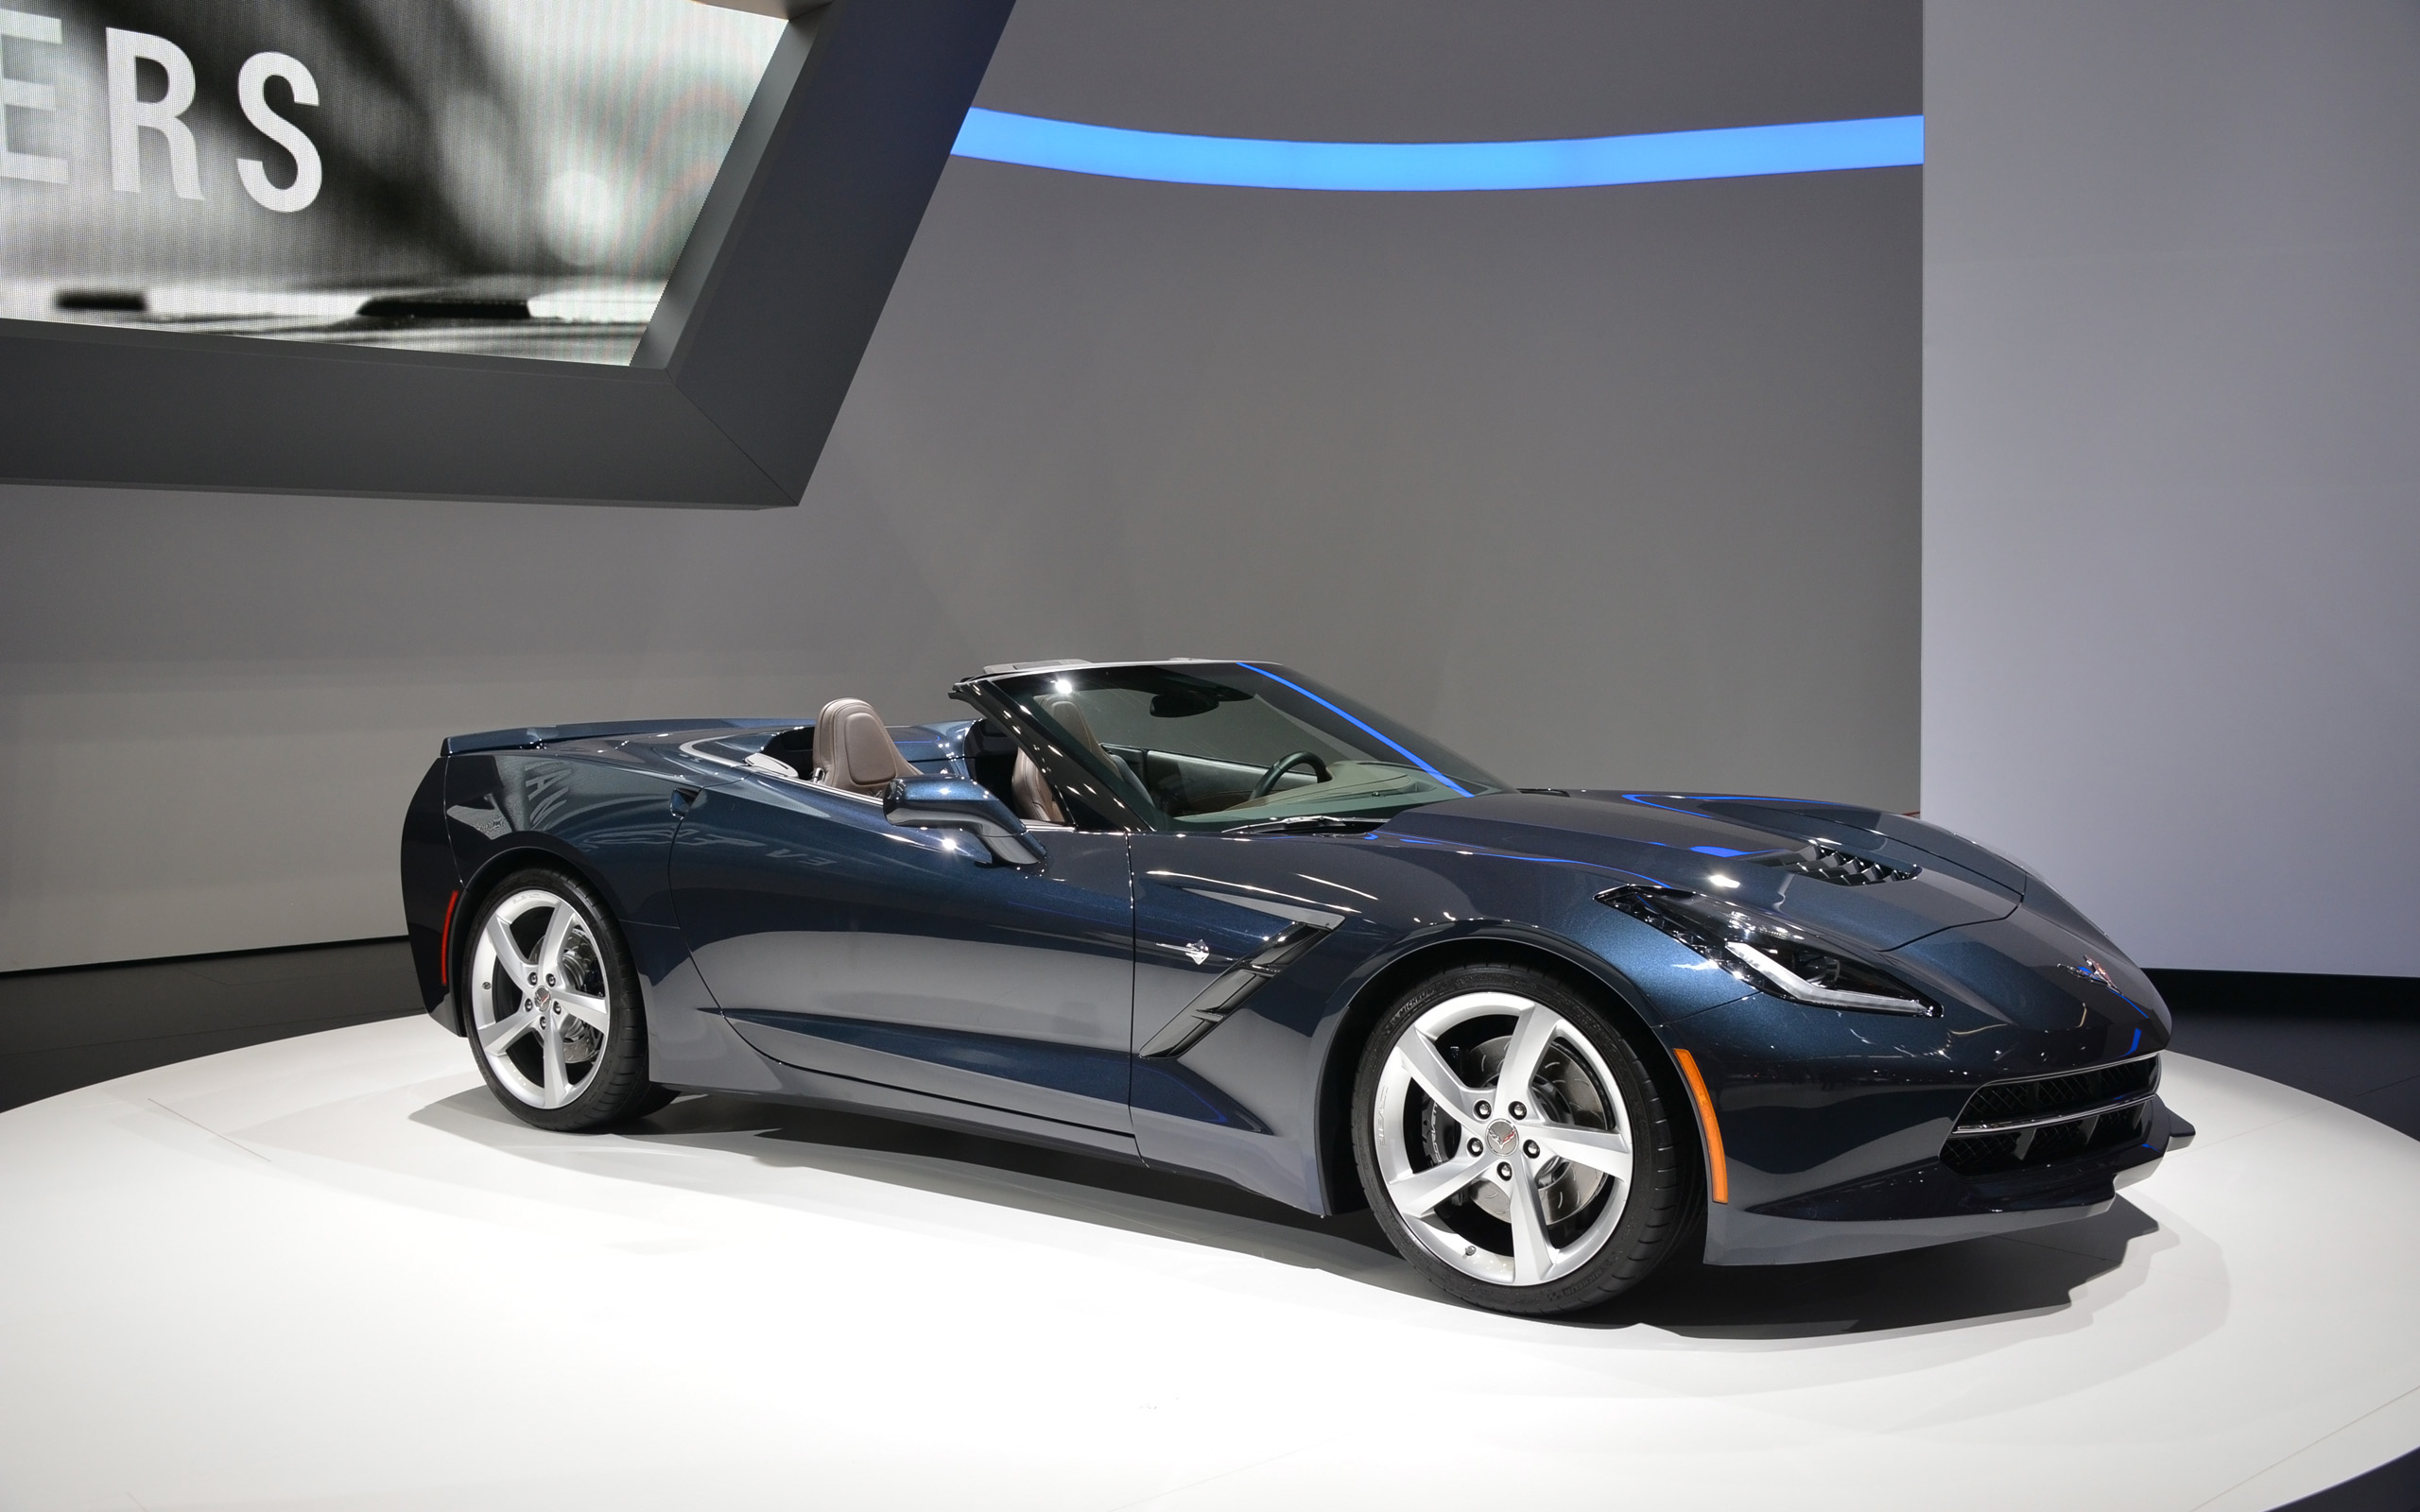 2013 chevrolet corvette stingray convertible iaa frankfurt. Black Bedroom Furniture Sets. Home Design Ideas